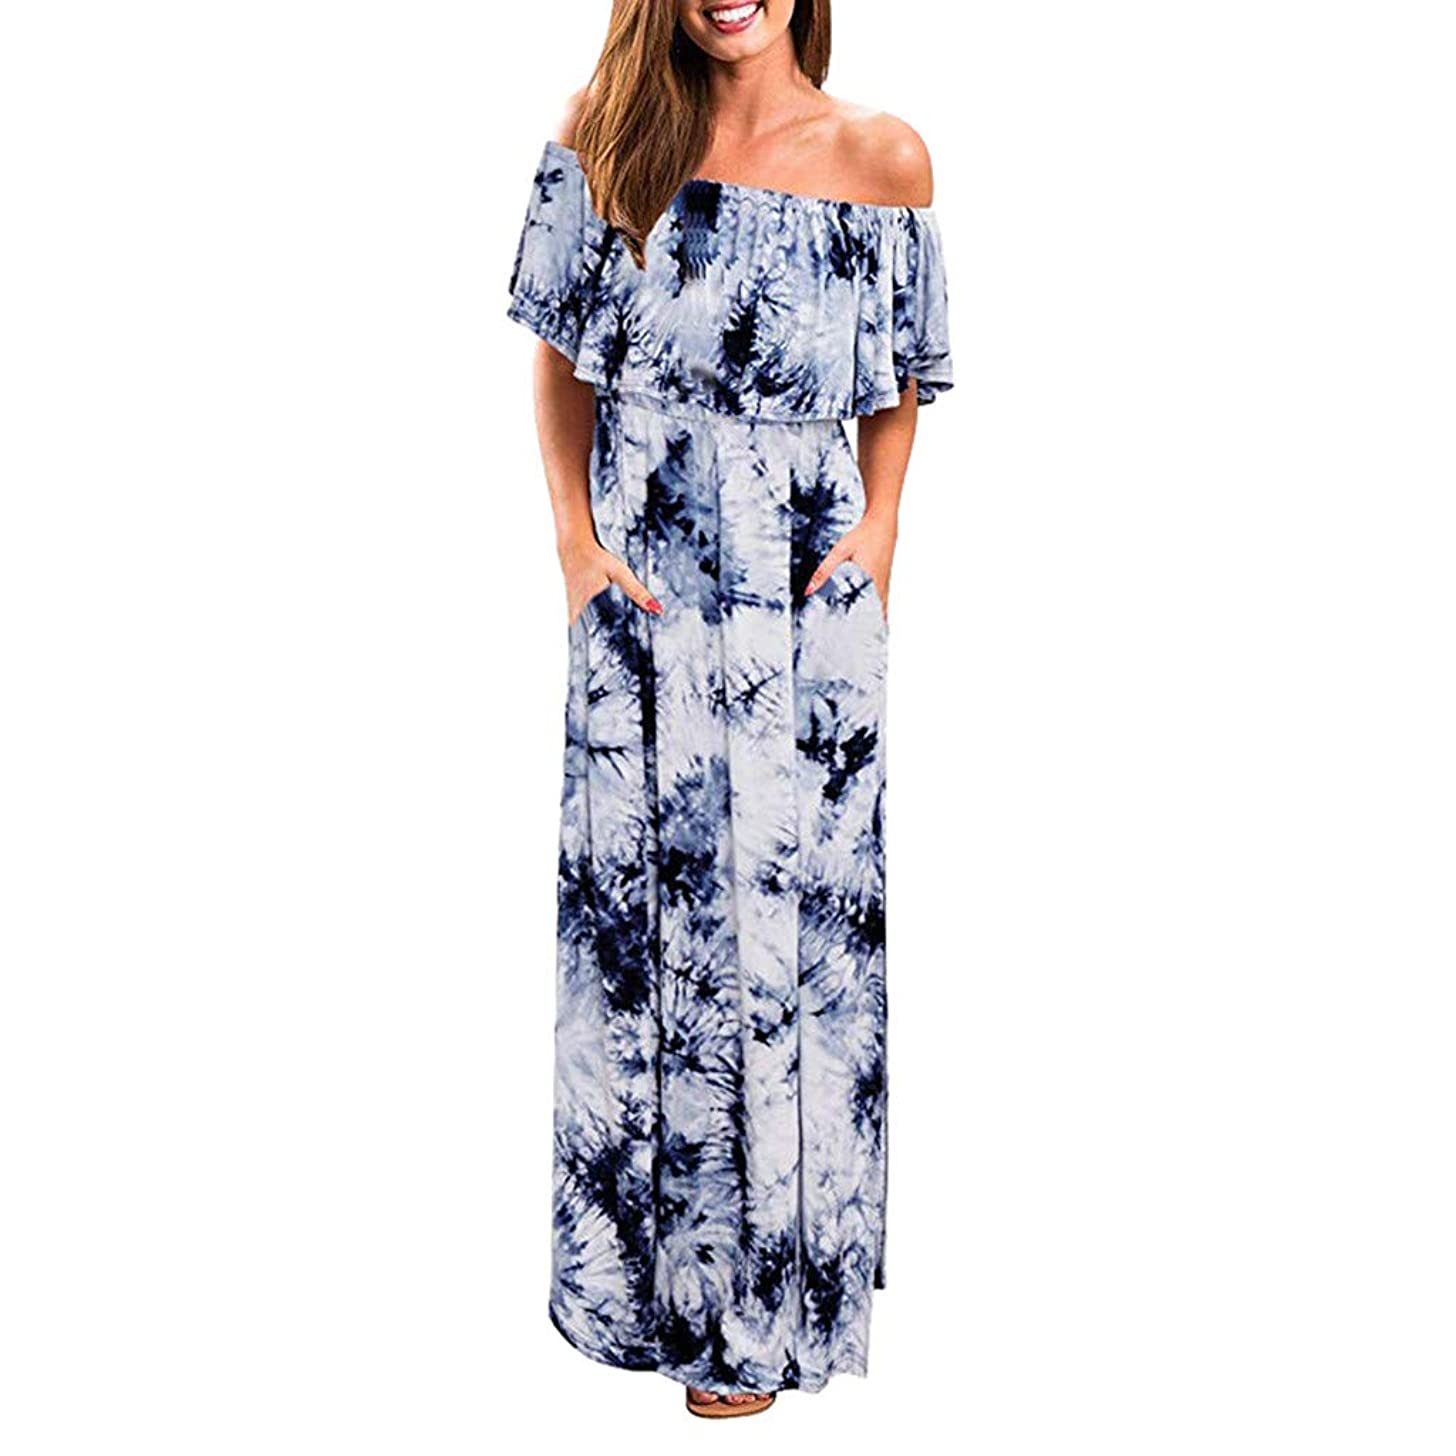 Womens Off The Shoulder Ruffle Party Dresses Side Split Beach Maxi Dress Tie Dye Split Maxi Long Dress Sundress